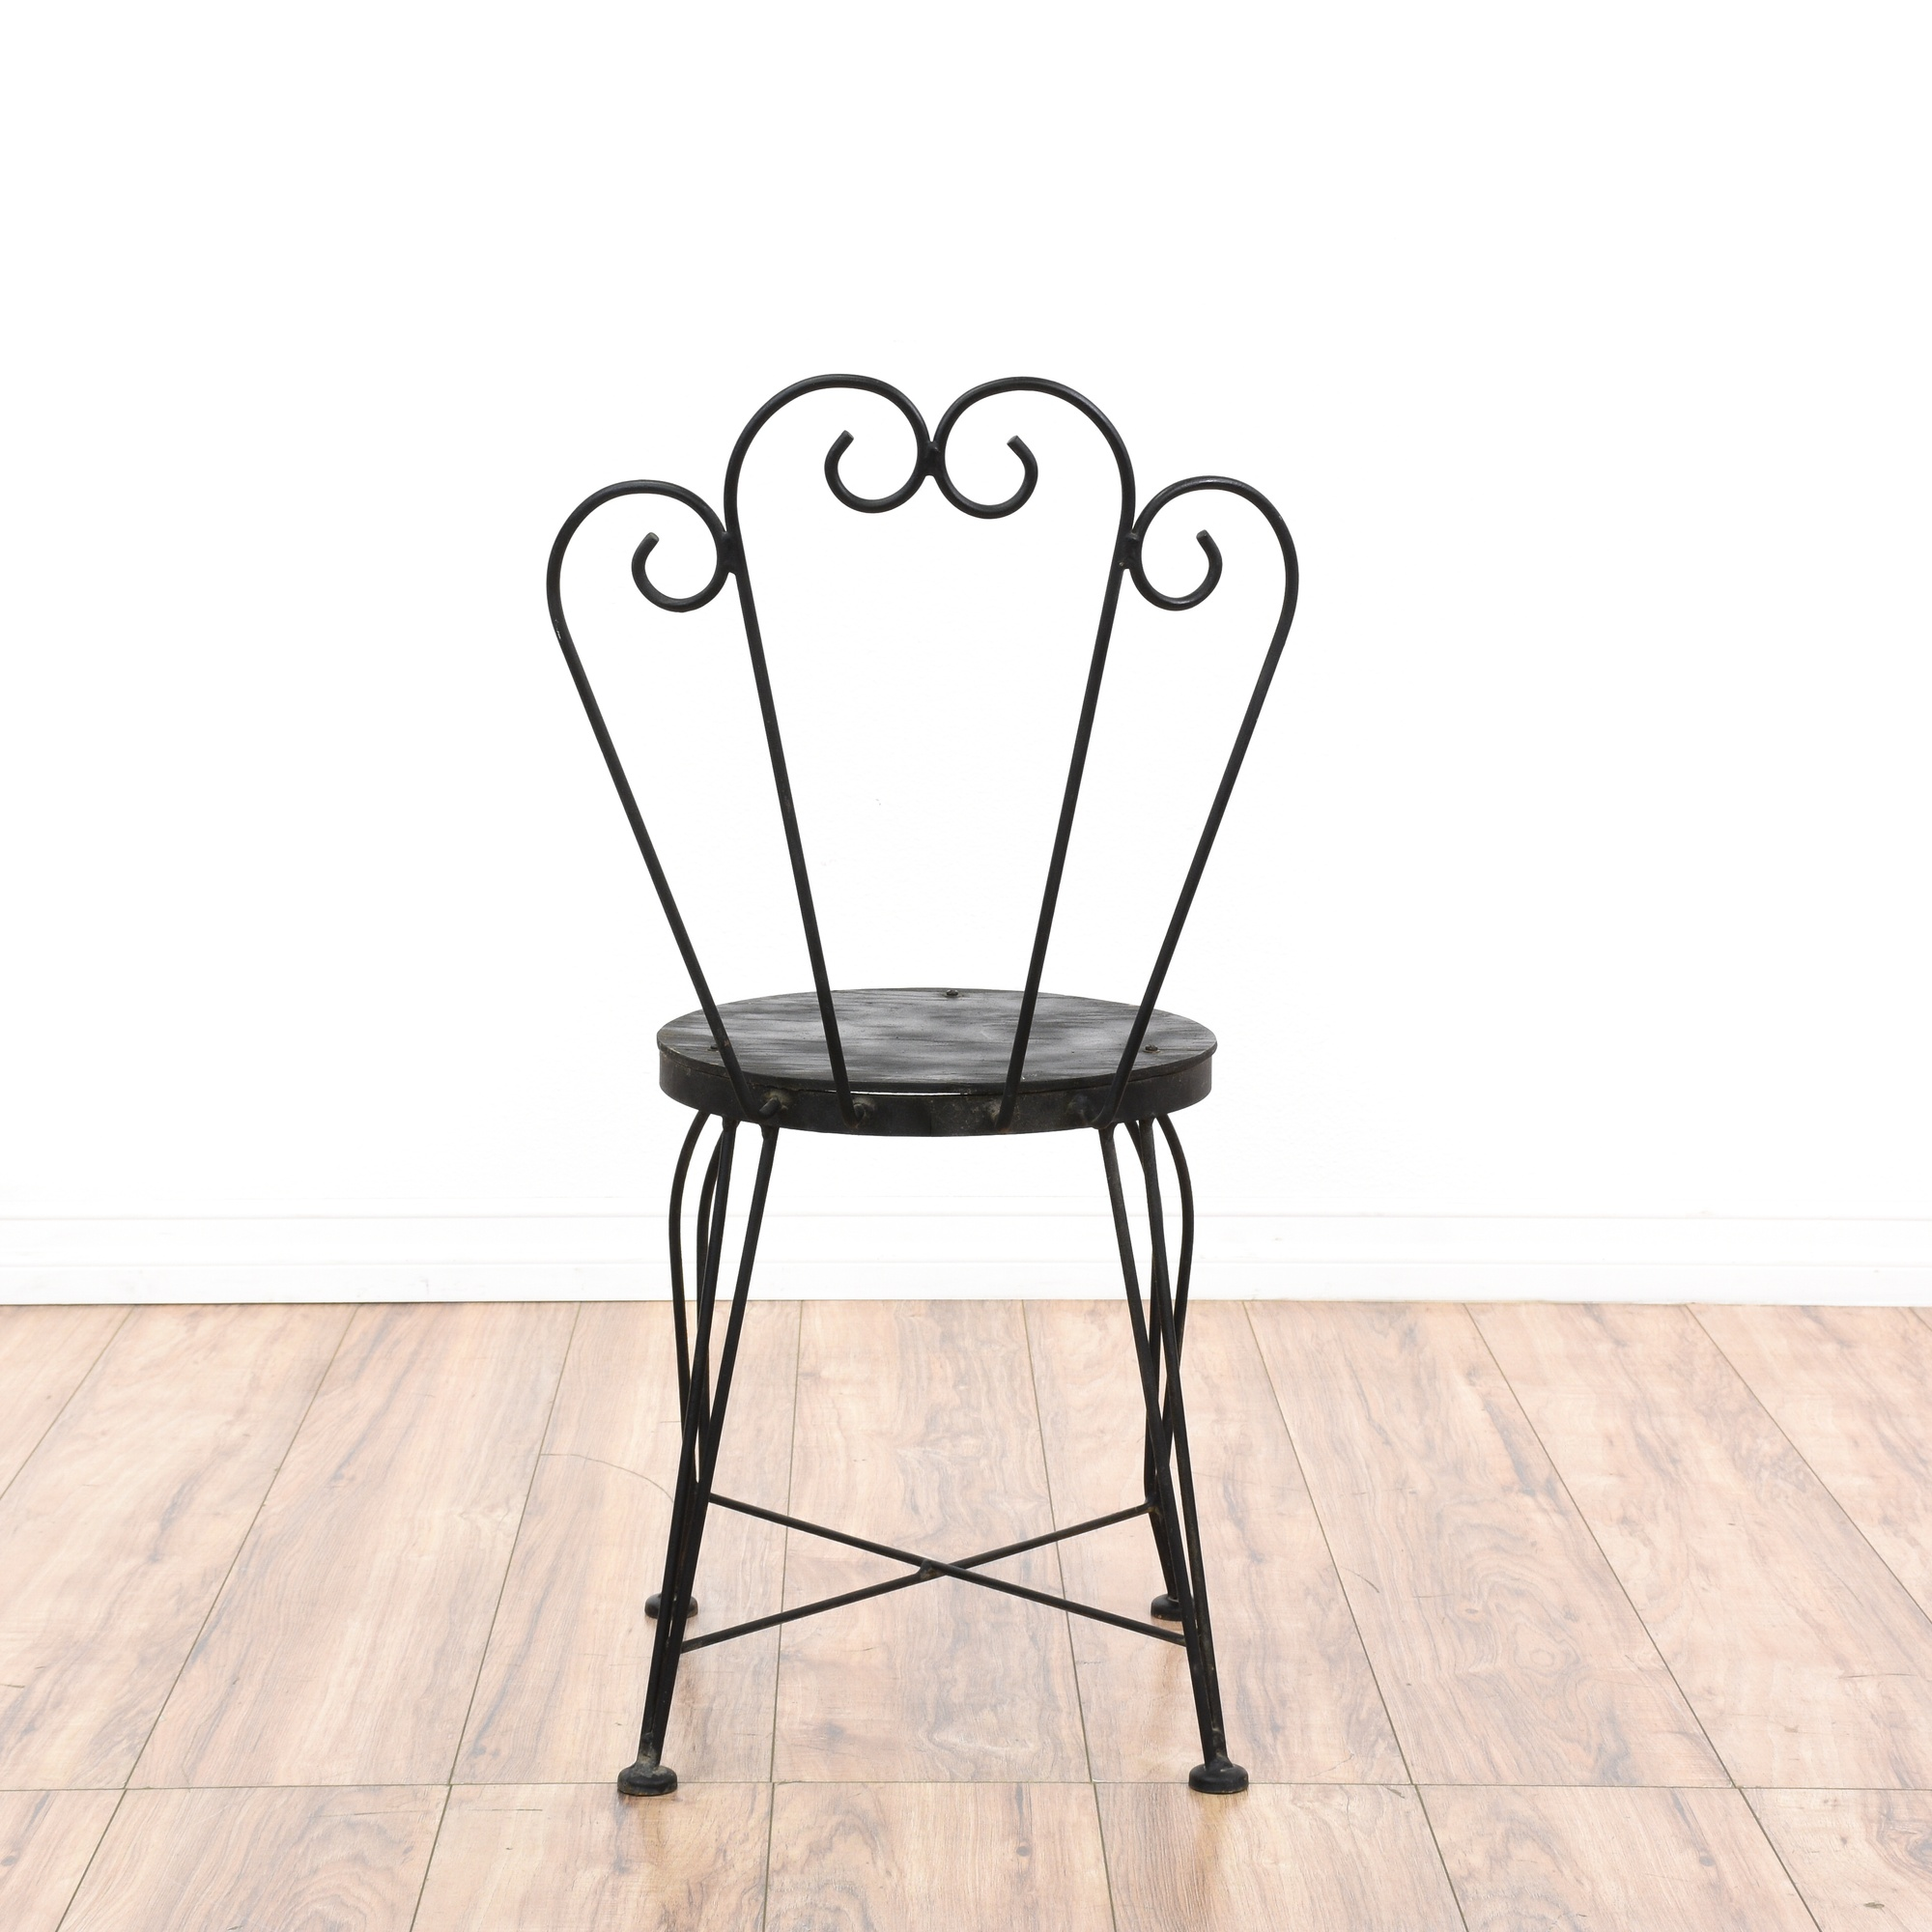 Pair of Black Metal Outdoor Cafe Chairs